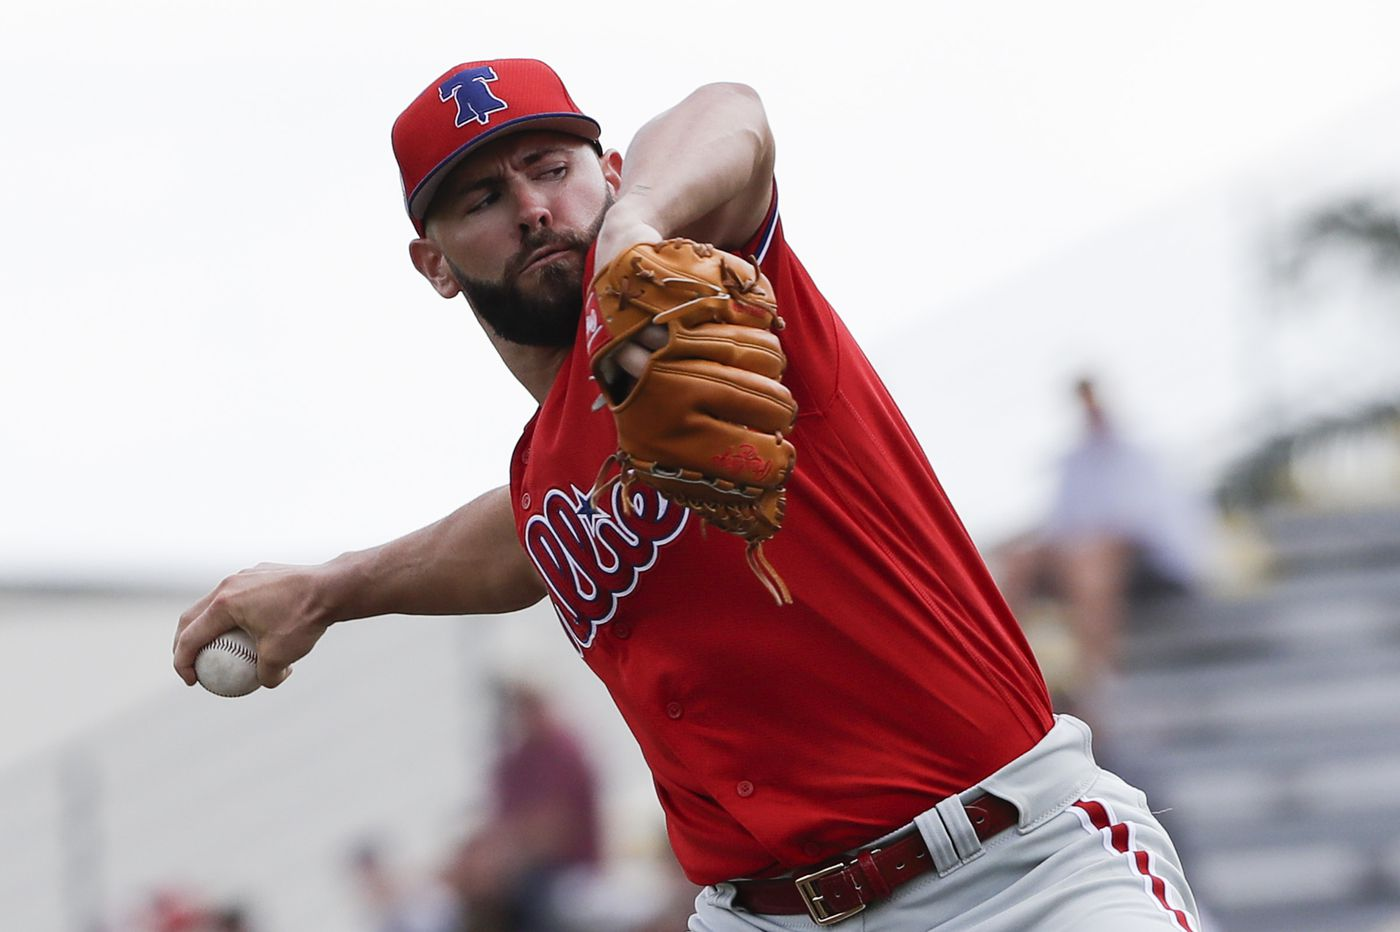 Phillies wrap up spring training with strong outing from Jake Arrieta